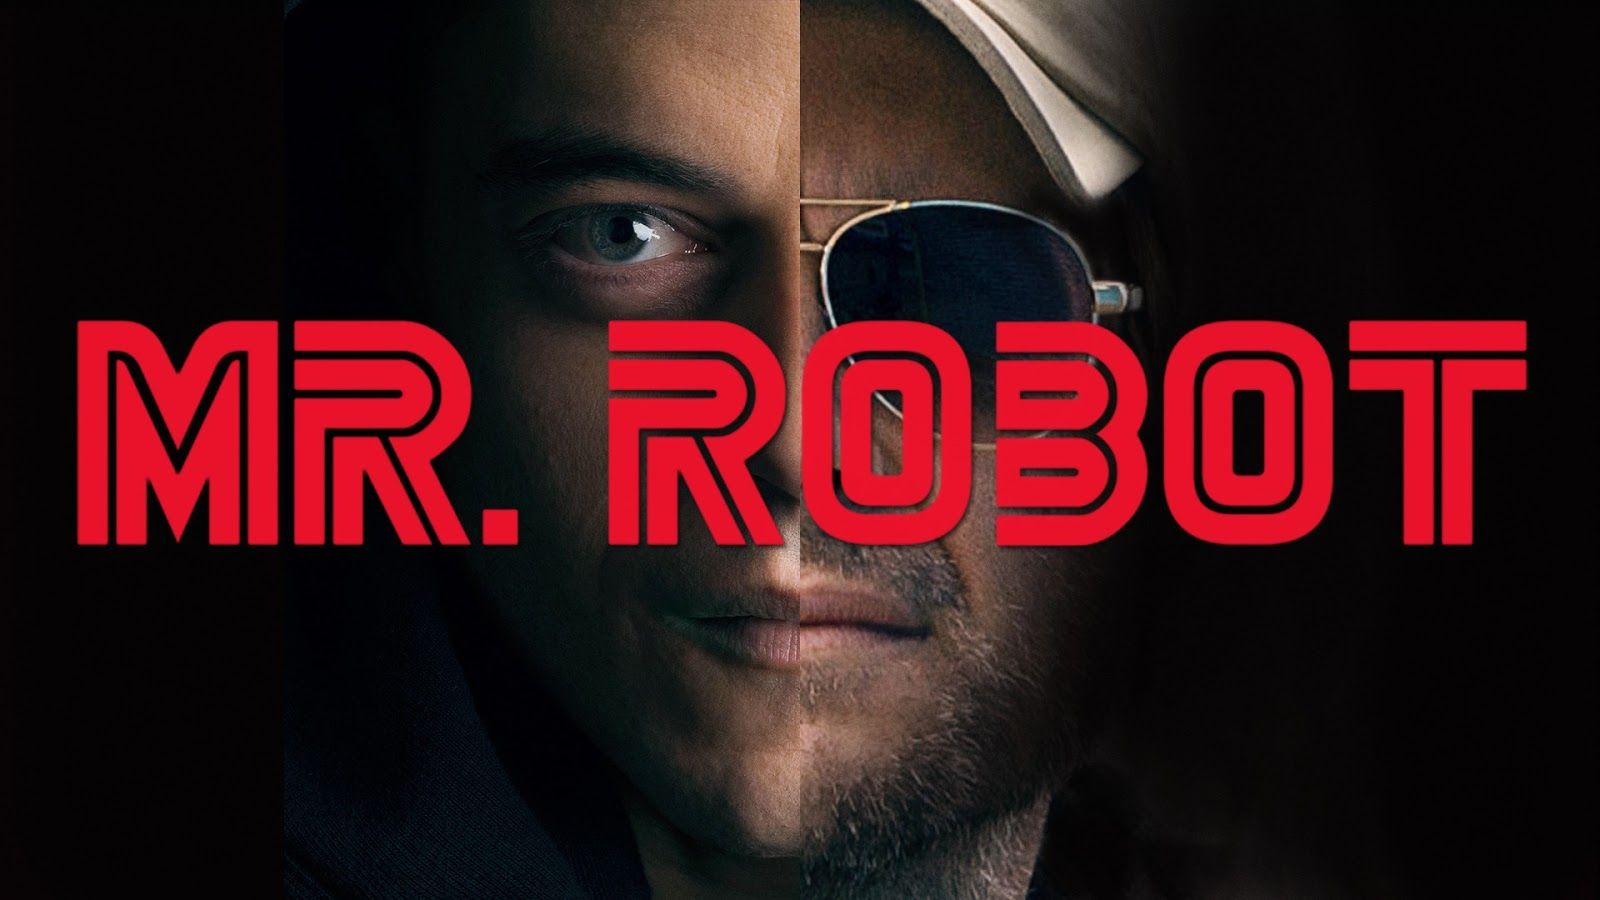 Mr Robot Wallpapers Hd Mr Robot Trailers Y Anarquia